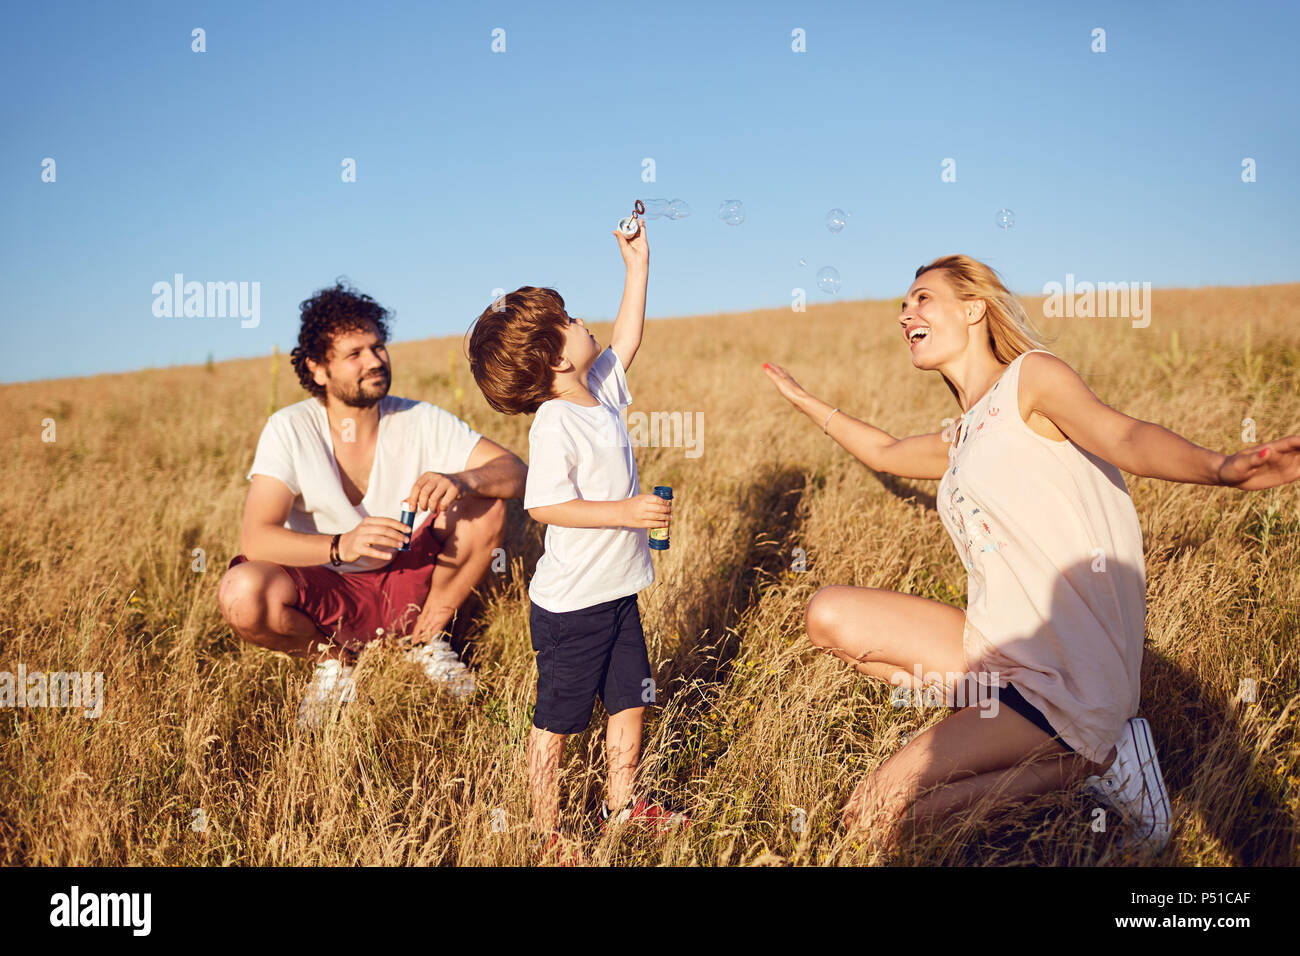 The family is playing with soap bubbles in nature - Stock Image